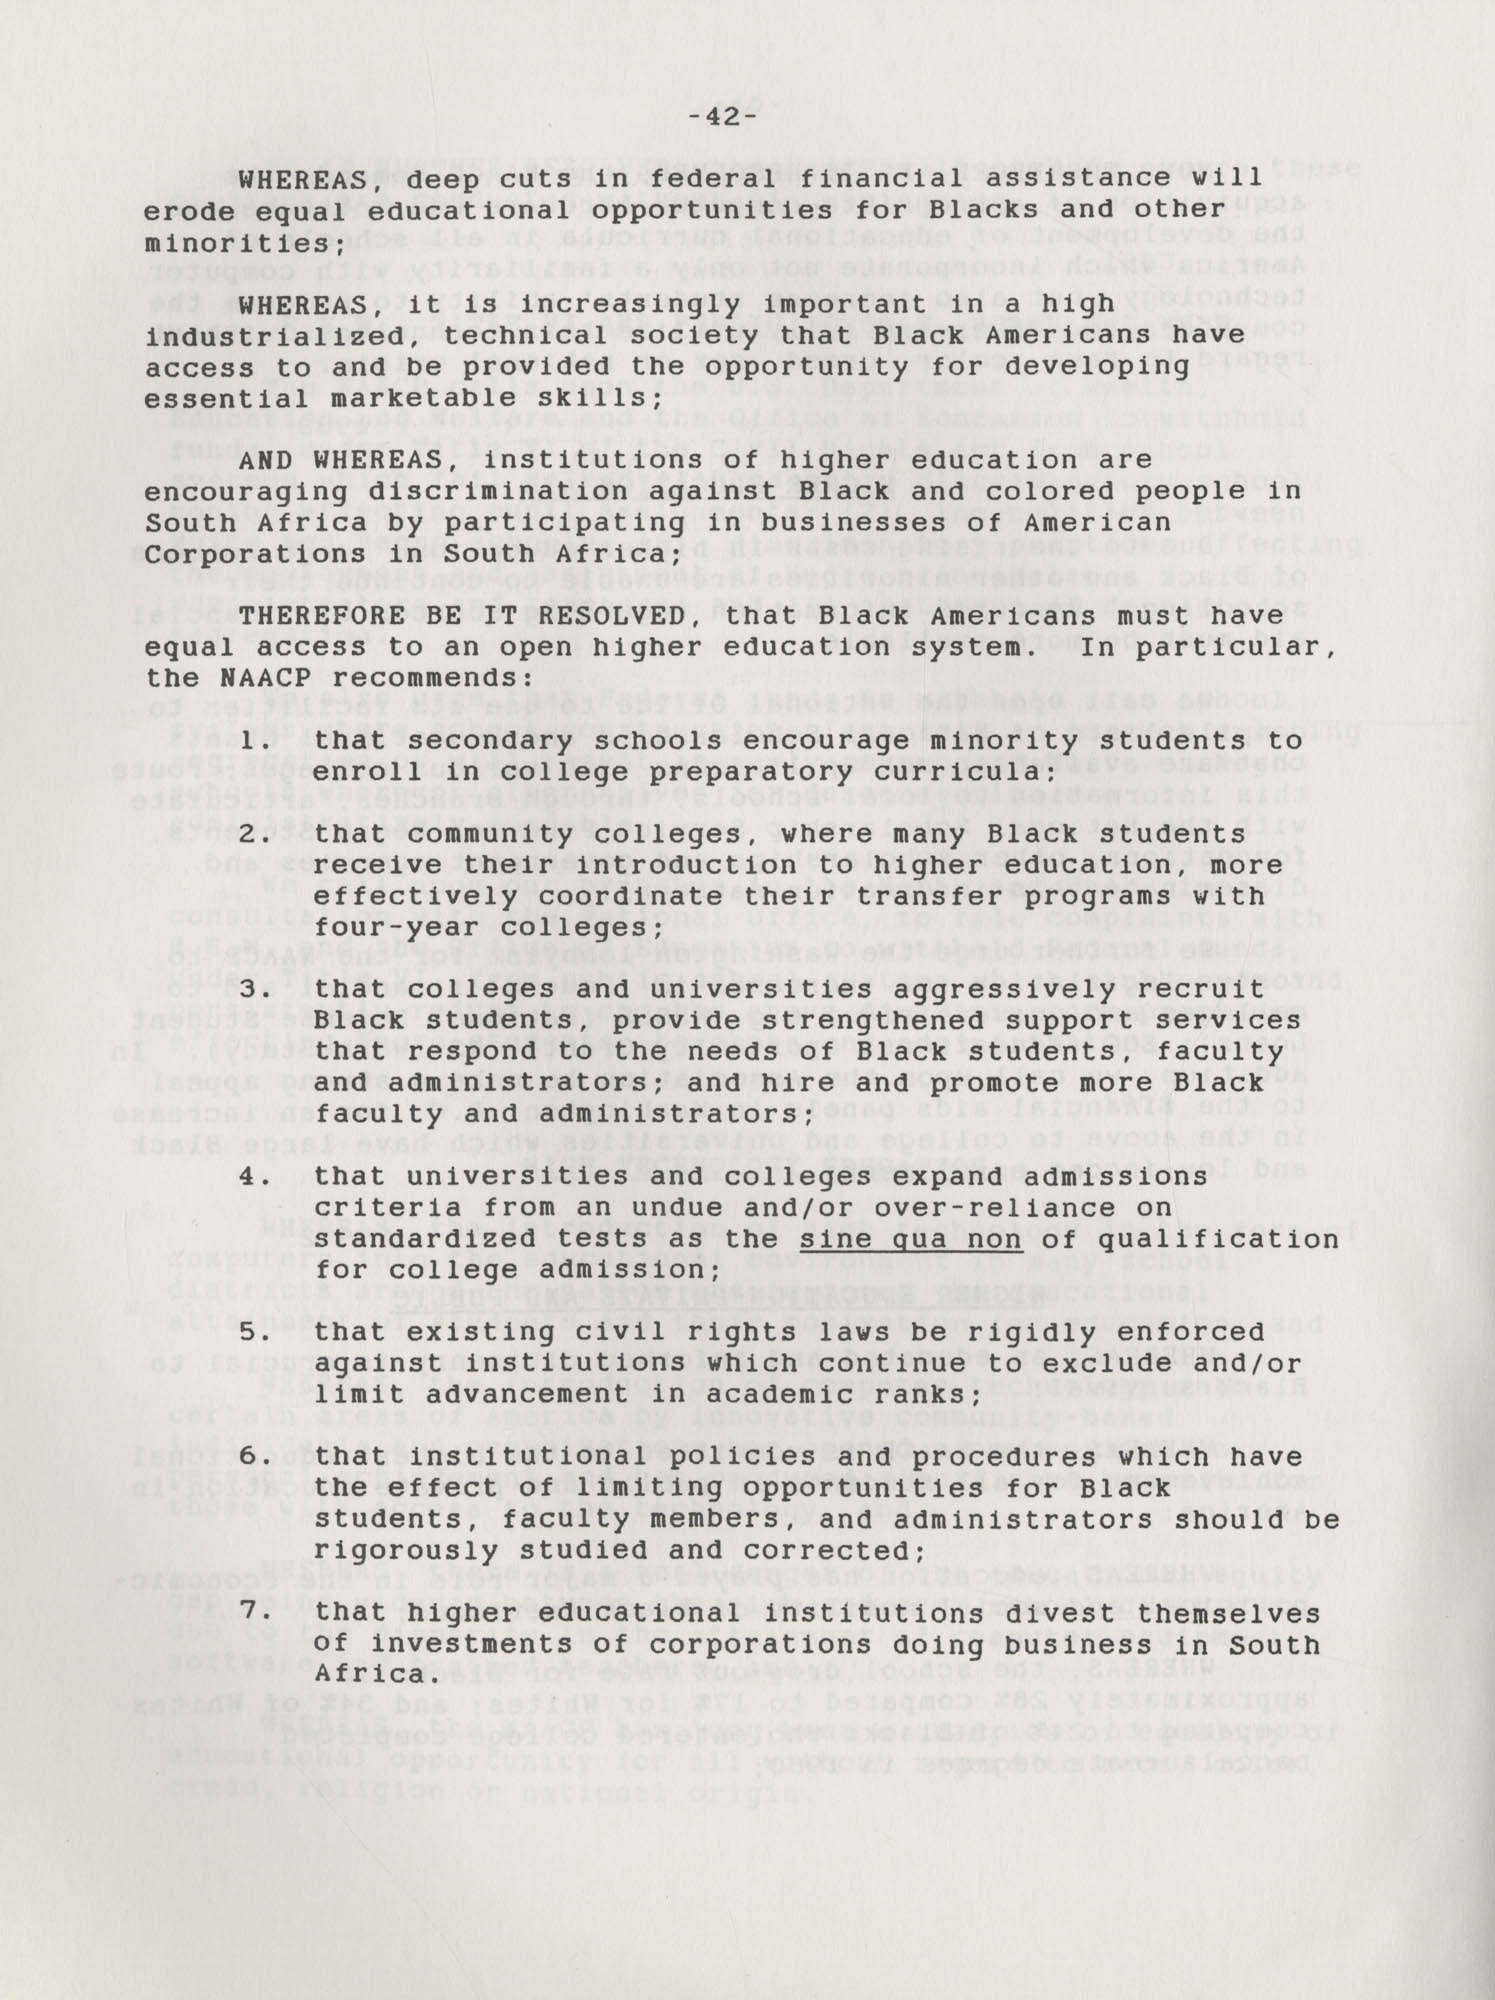 NAACP Resolutions on Education, 1970-1989, Index to Education Resolutions, Page 42